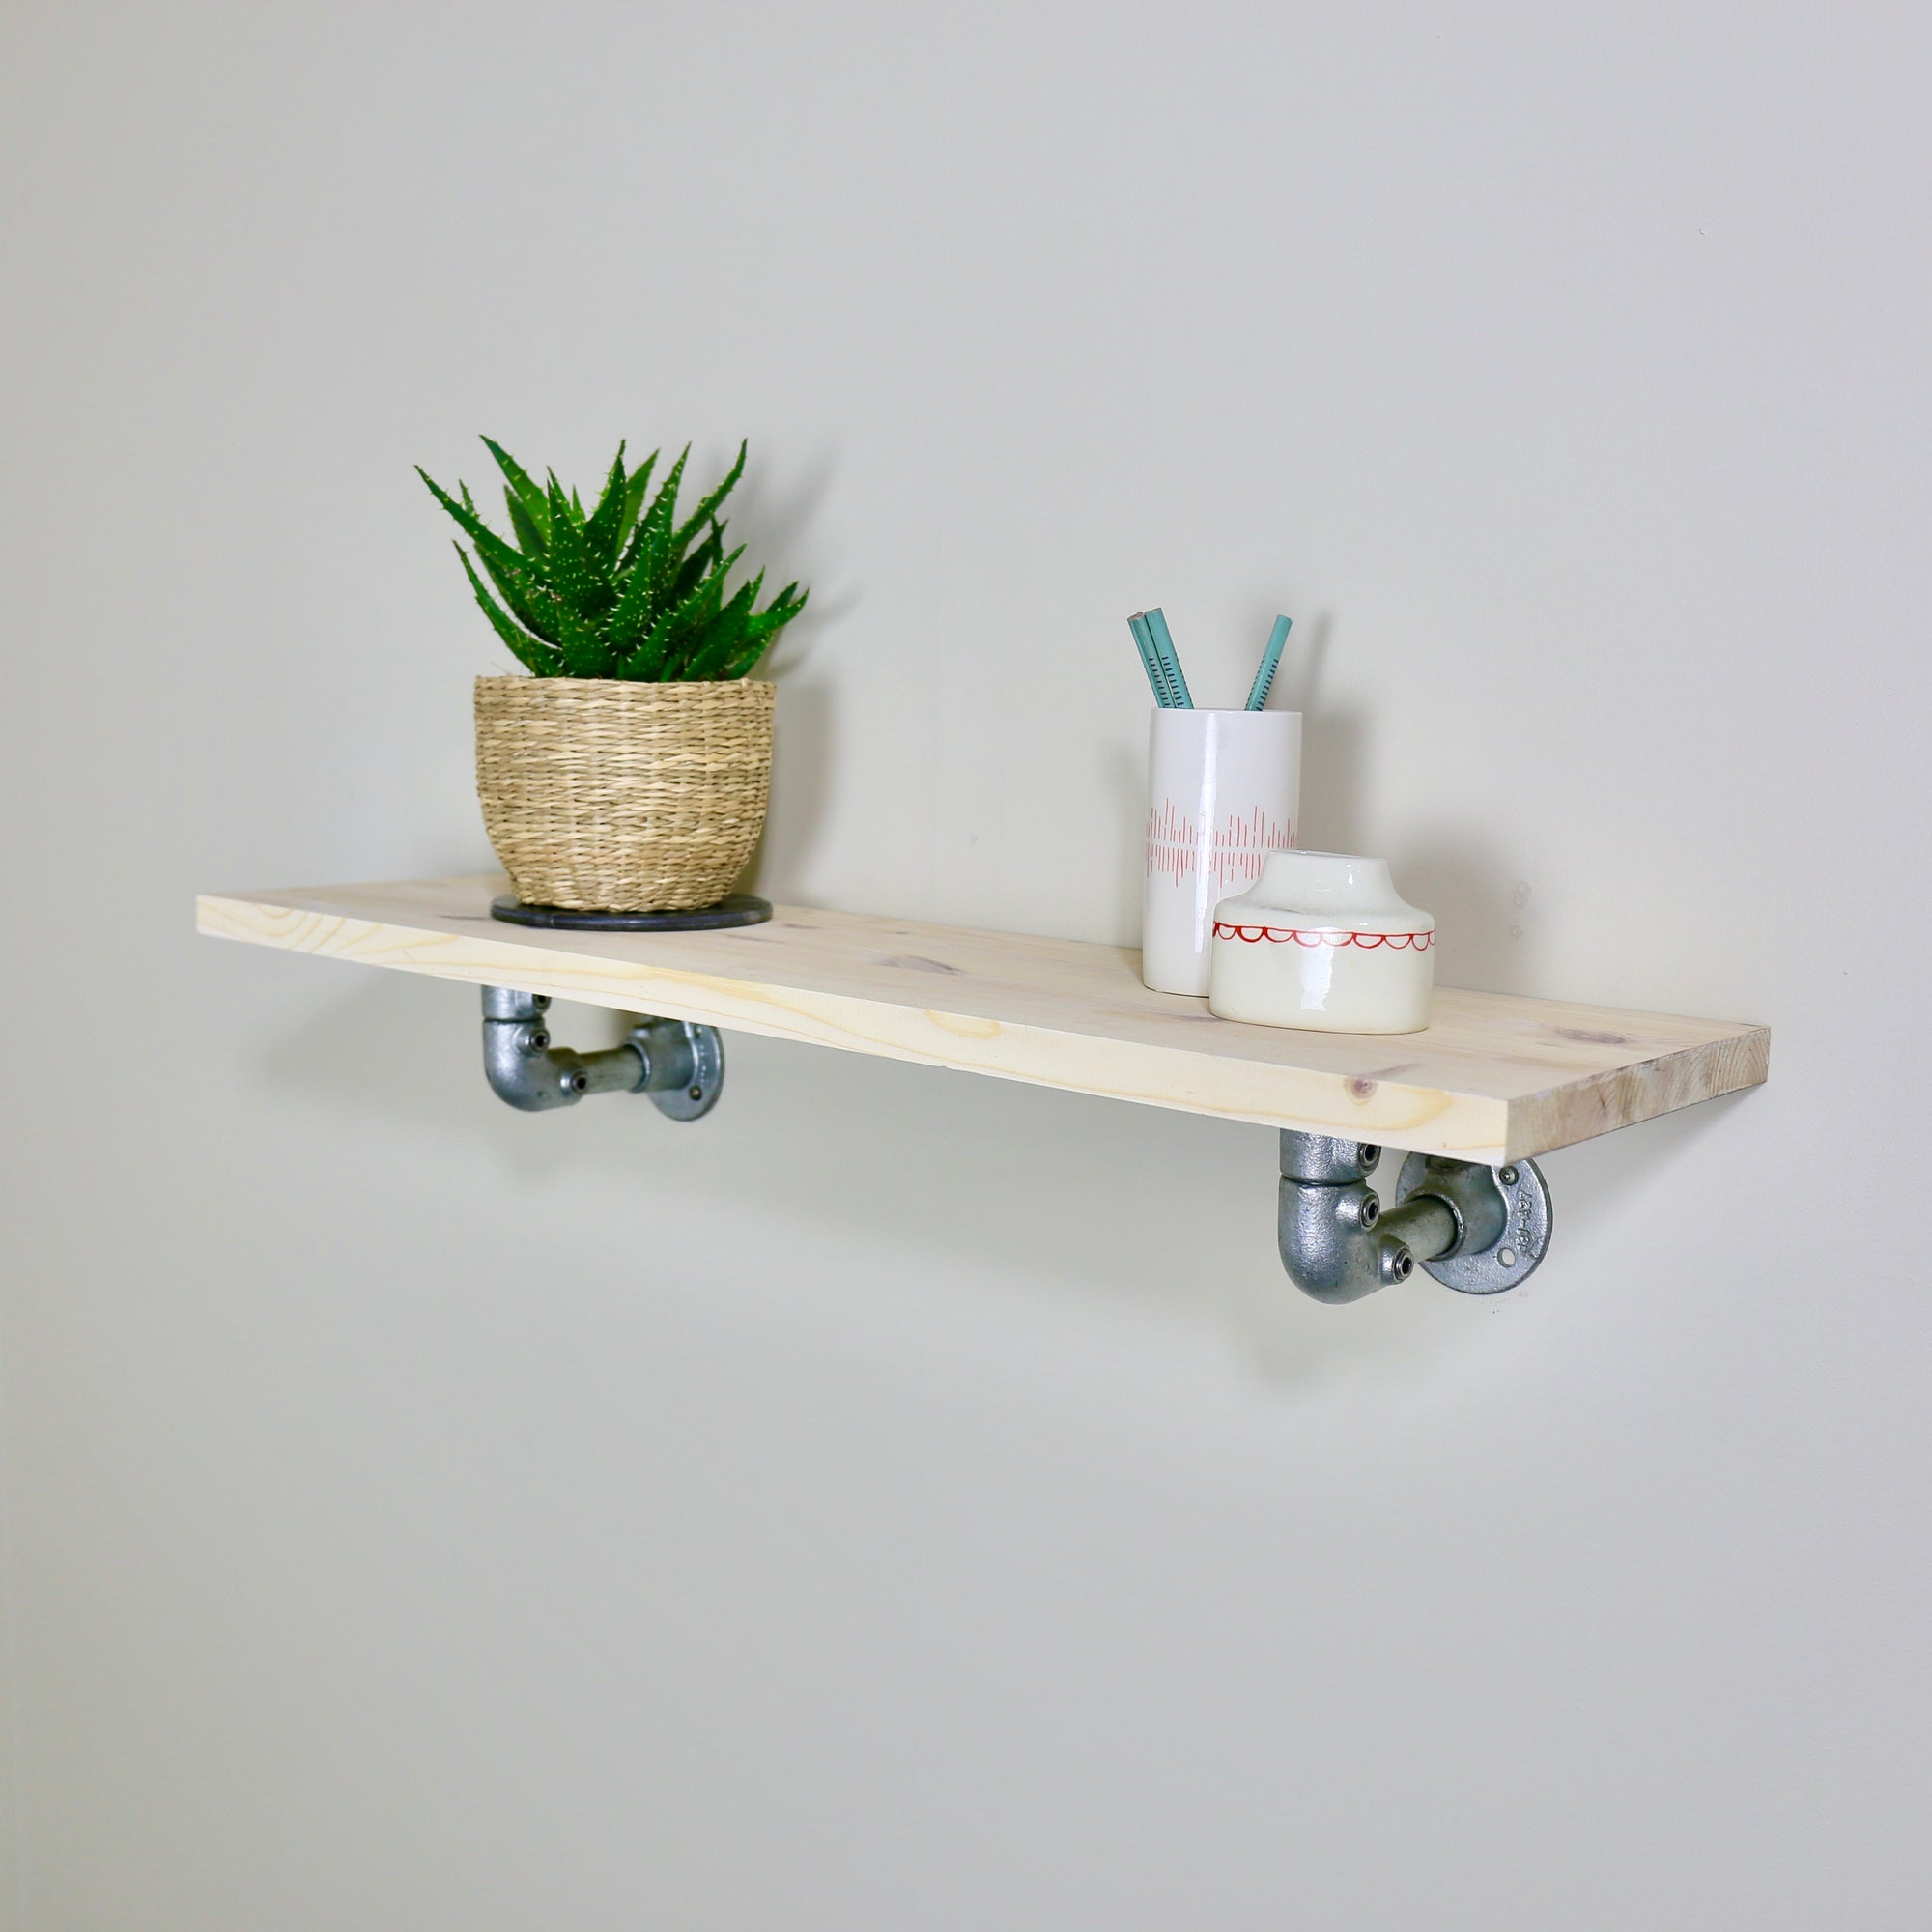 Wood Shelf // Galv pipe bracket